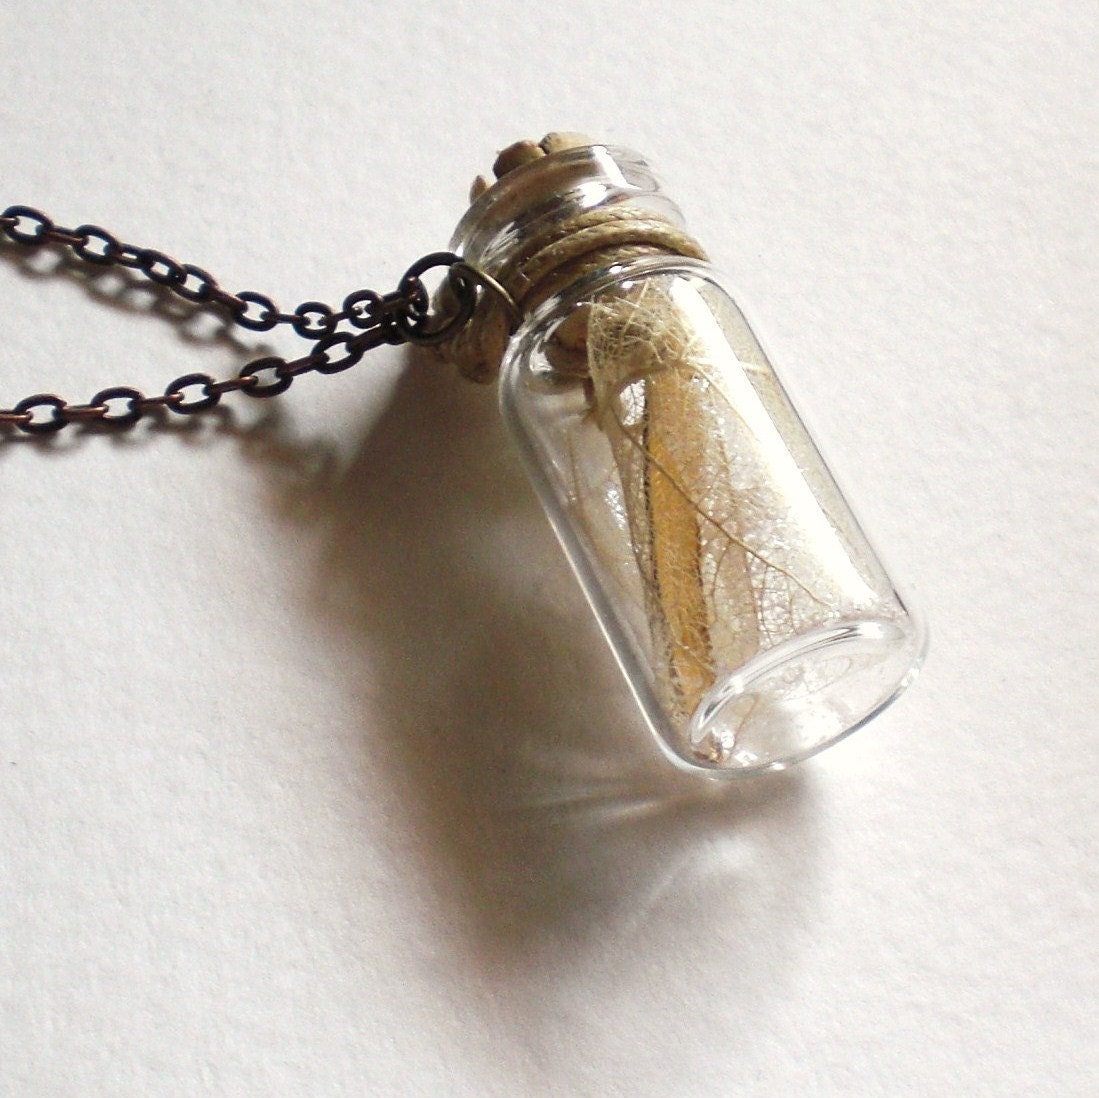 Fairy Wings in a Bottle Necklace - grendelboots